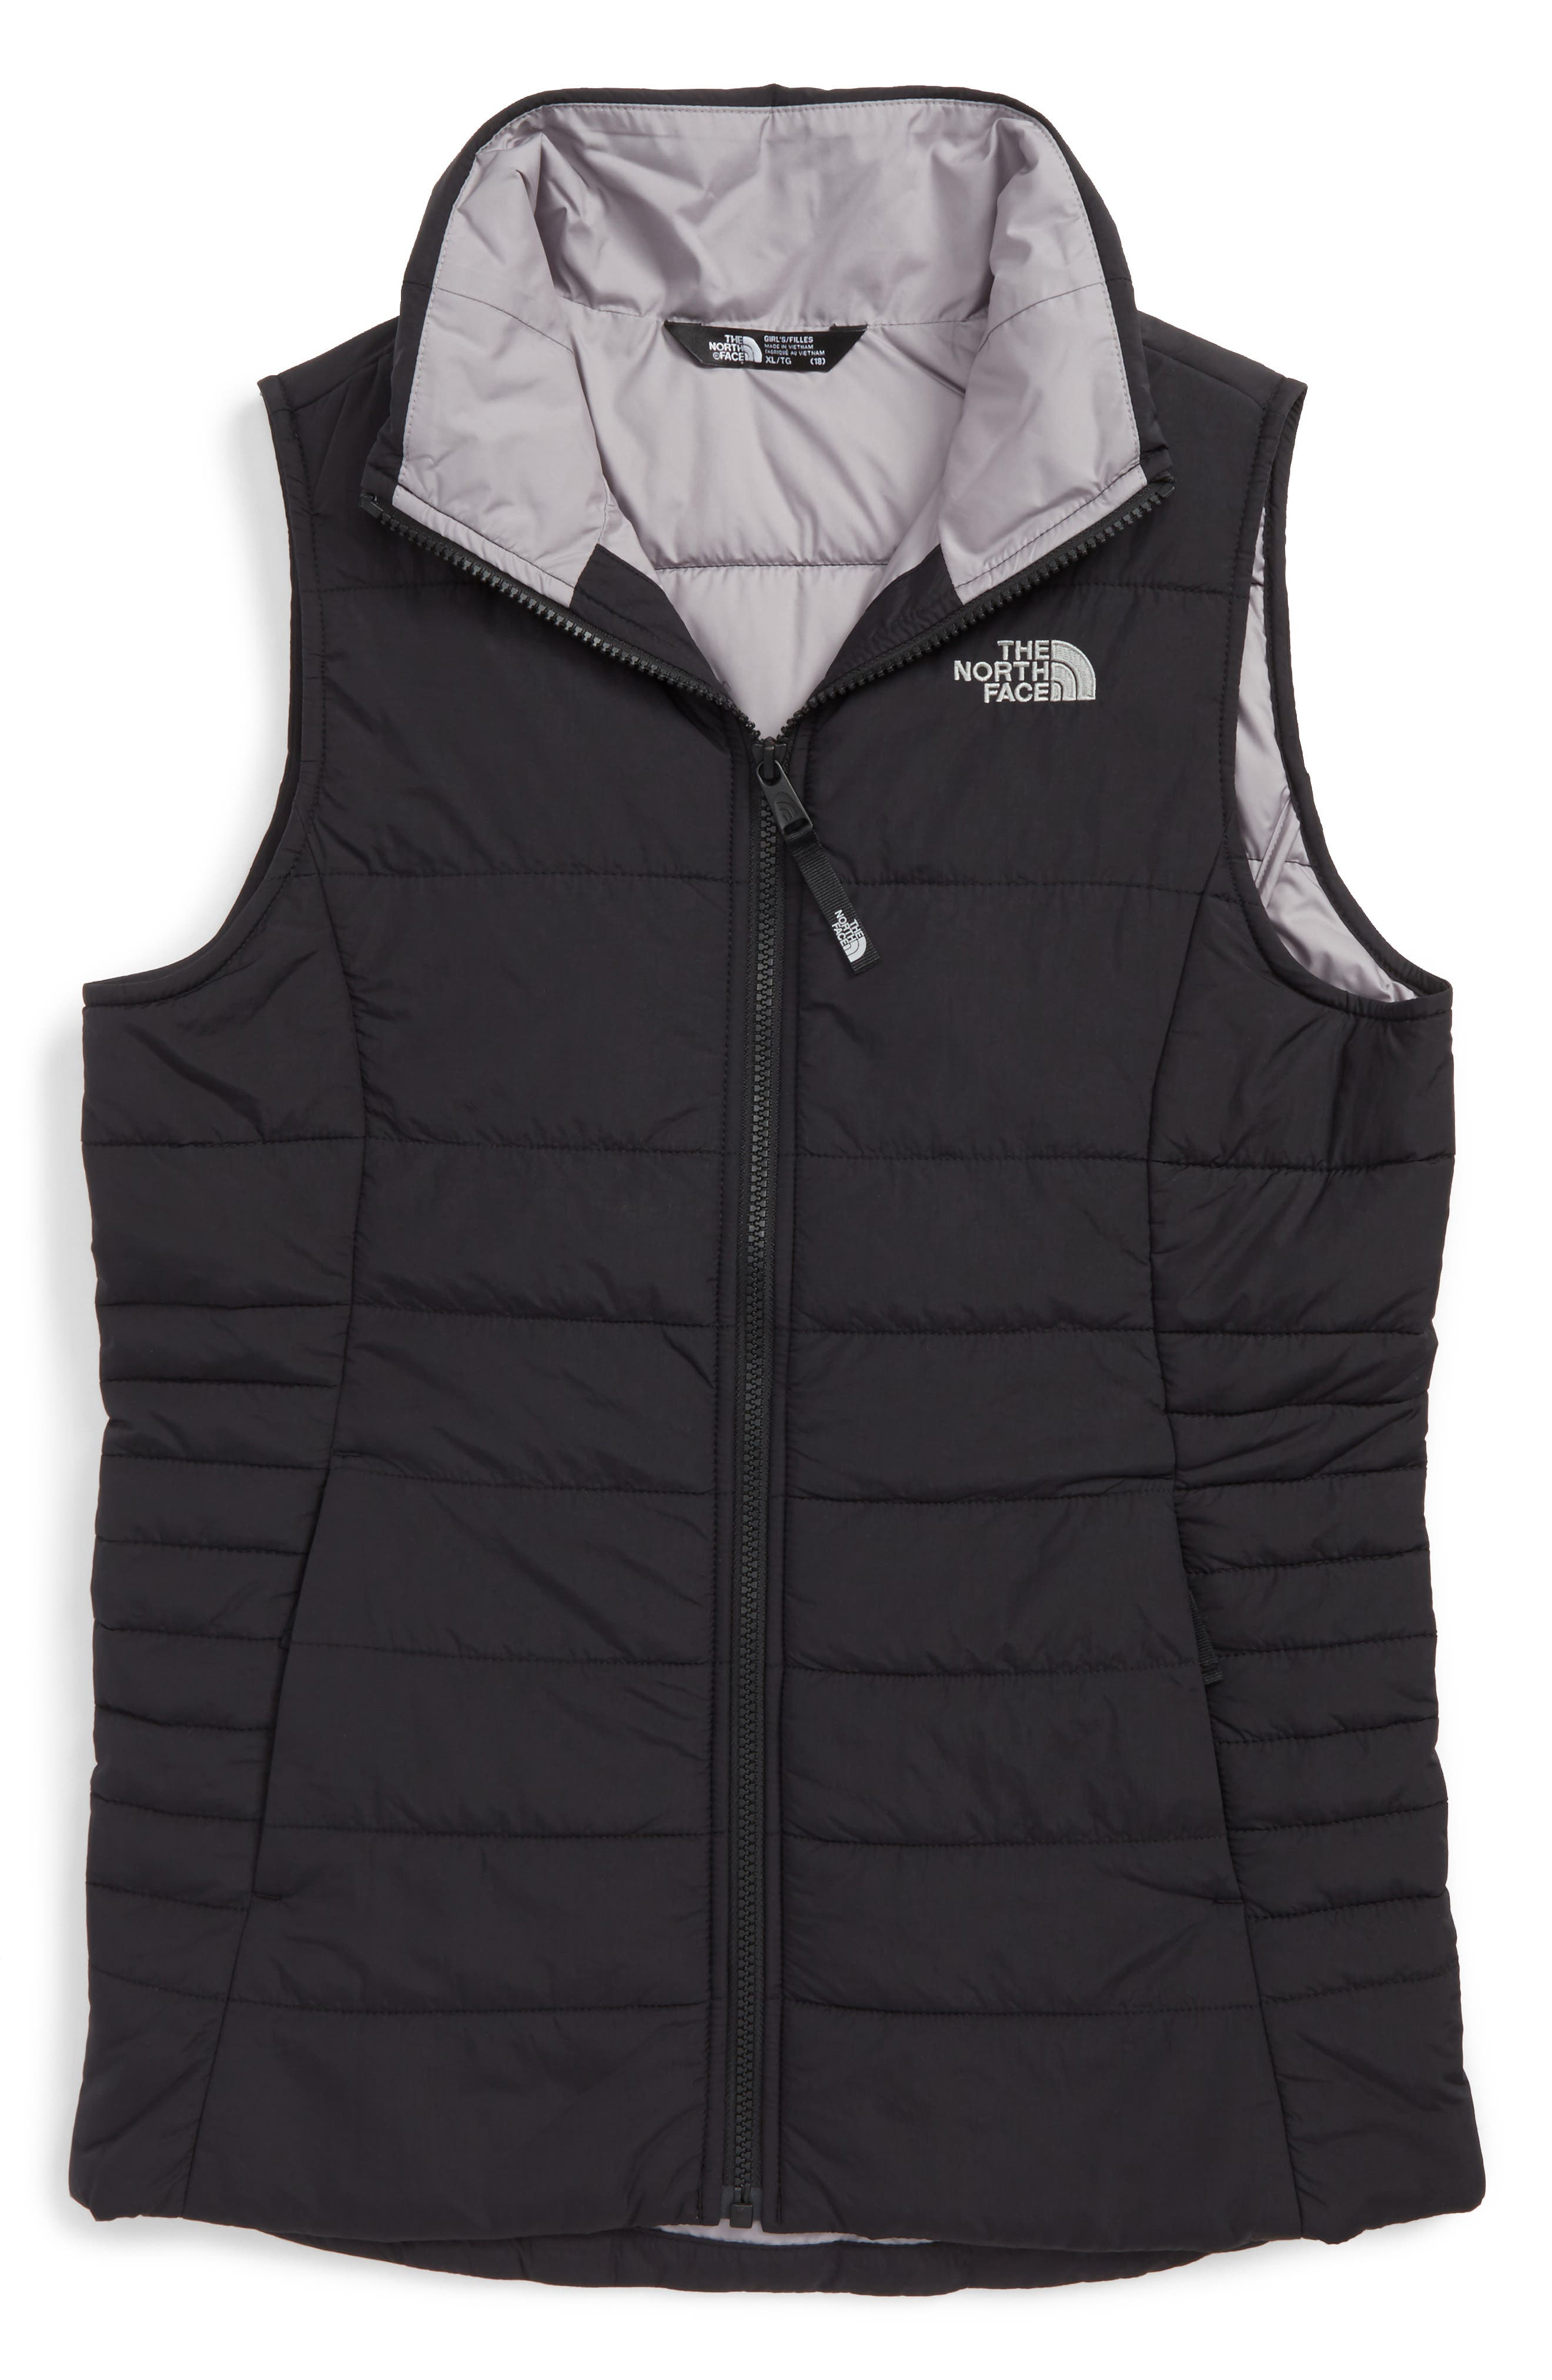 Alternate Image 1 Selected - The North Face Harway Vest (Little Girls & Big Girls)